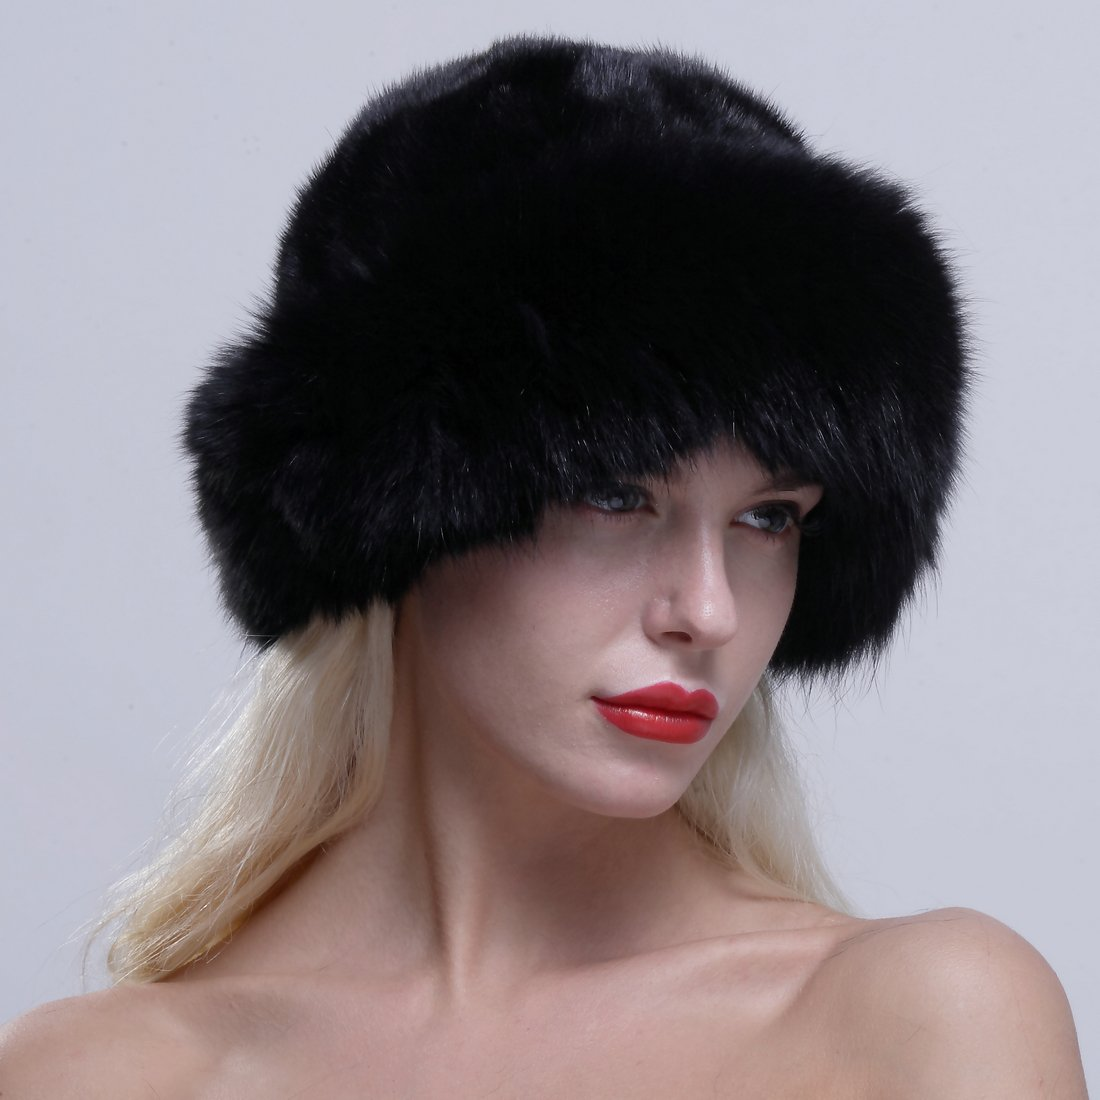 efbdb015edf URSFUR Women s Real Fox Fur Roller Hat with Mink Top Multicolor Black at  Amazon Women s Clothing store